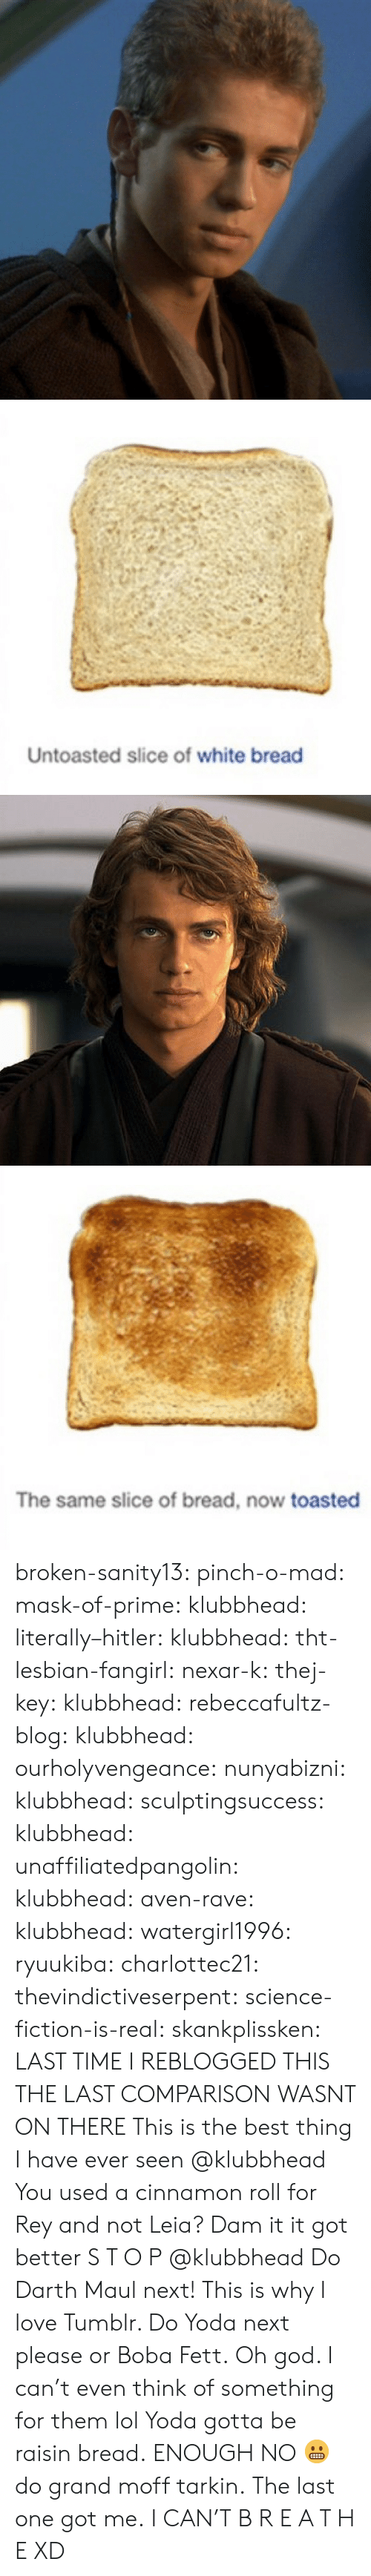 tht: Untoasted slice of white bread   The same slice of bread, now toasted broken-sanity13:  pinch-o-mad:   mask-of-prime:  klubbhead:  literally–hitler:  klubbhead:  tht-lesbian-fangirl:  nexar-k:  thej-key:  klubbhead:  rebeccafultz-blog:   klubbhead:  ourholyvengeance:  nunyabizni:  klubbhead:  sculptingsuccess:  klubbhead:   unaffiliatedpangolin:  klubbhead:  aven-rave:  klubbhead:   watergirl1996:  ryuukiba:  charlottec21:  thevindictiveserpent:  science-fiction-is-real:  skankplissken:                   LAST TIME I REBLOGGED THIS THE LAST COMPARISON WASNT ON THERE    This is the best thing I have ever seen   @klubbhead You used a cinnamon roll for Rey and not Leia?    Dam it it got better   S T O P  @klubbhead Do Darth Maul next!   This is why I love Tumblr. Do Yoda next please or Boba Fett.   Oh god. I can't even think of something for them lol  Yoda gotta be raisin bread.   ENOUGH   NO 😬 do grand moff tarkin.     The last one got me.   I CAN'T  B R E A T H E  XD